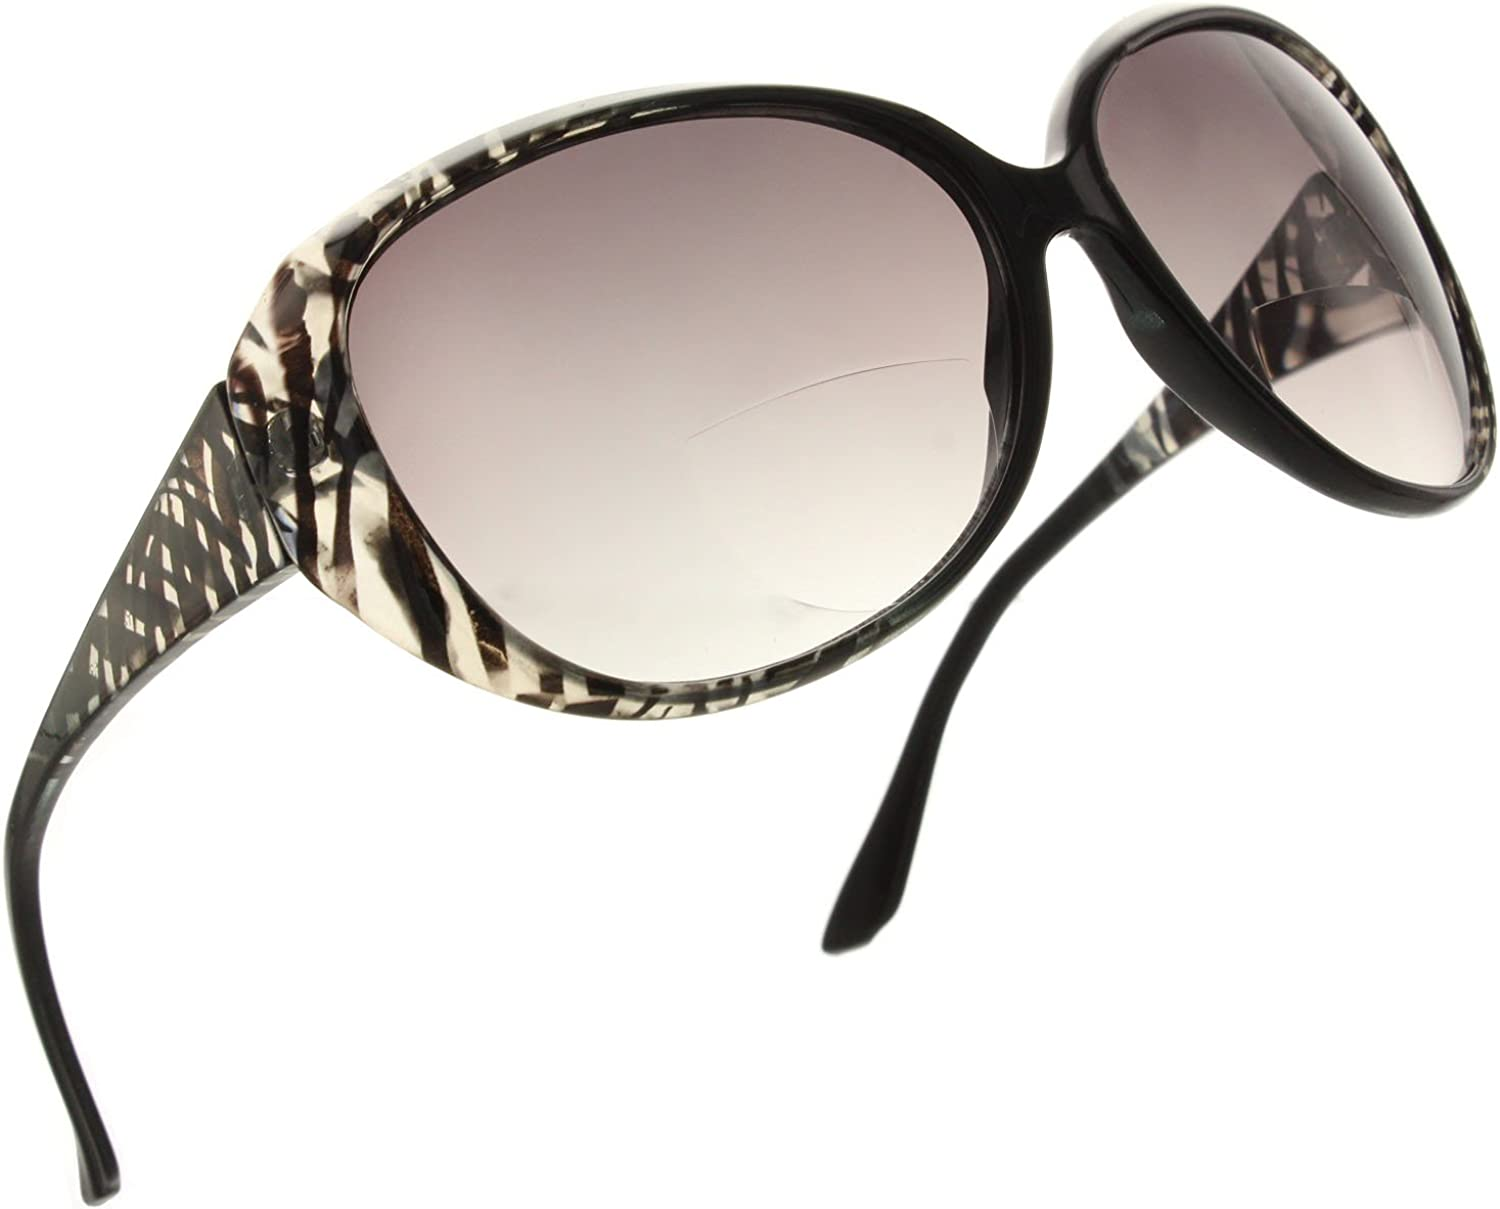 Fiore Bodacious Bifocal Reading Sunglasses Readers for Women